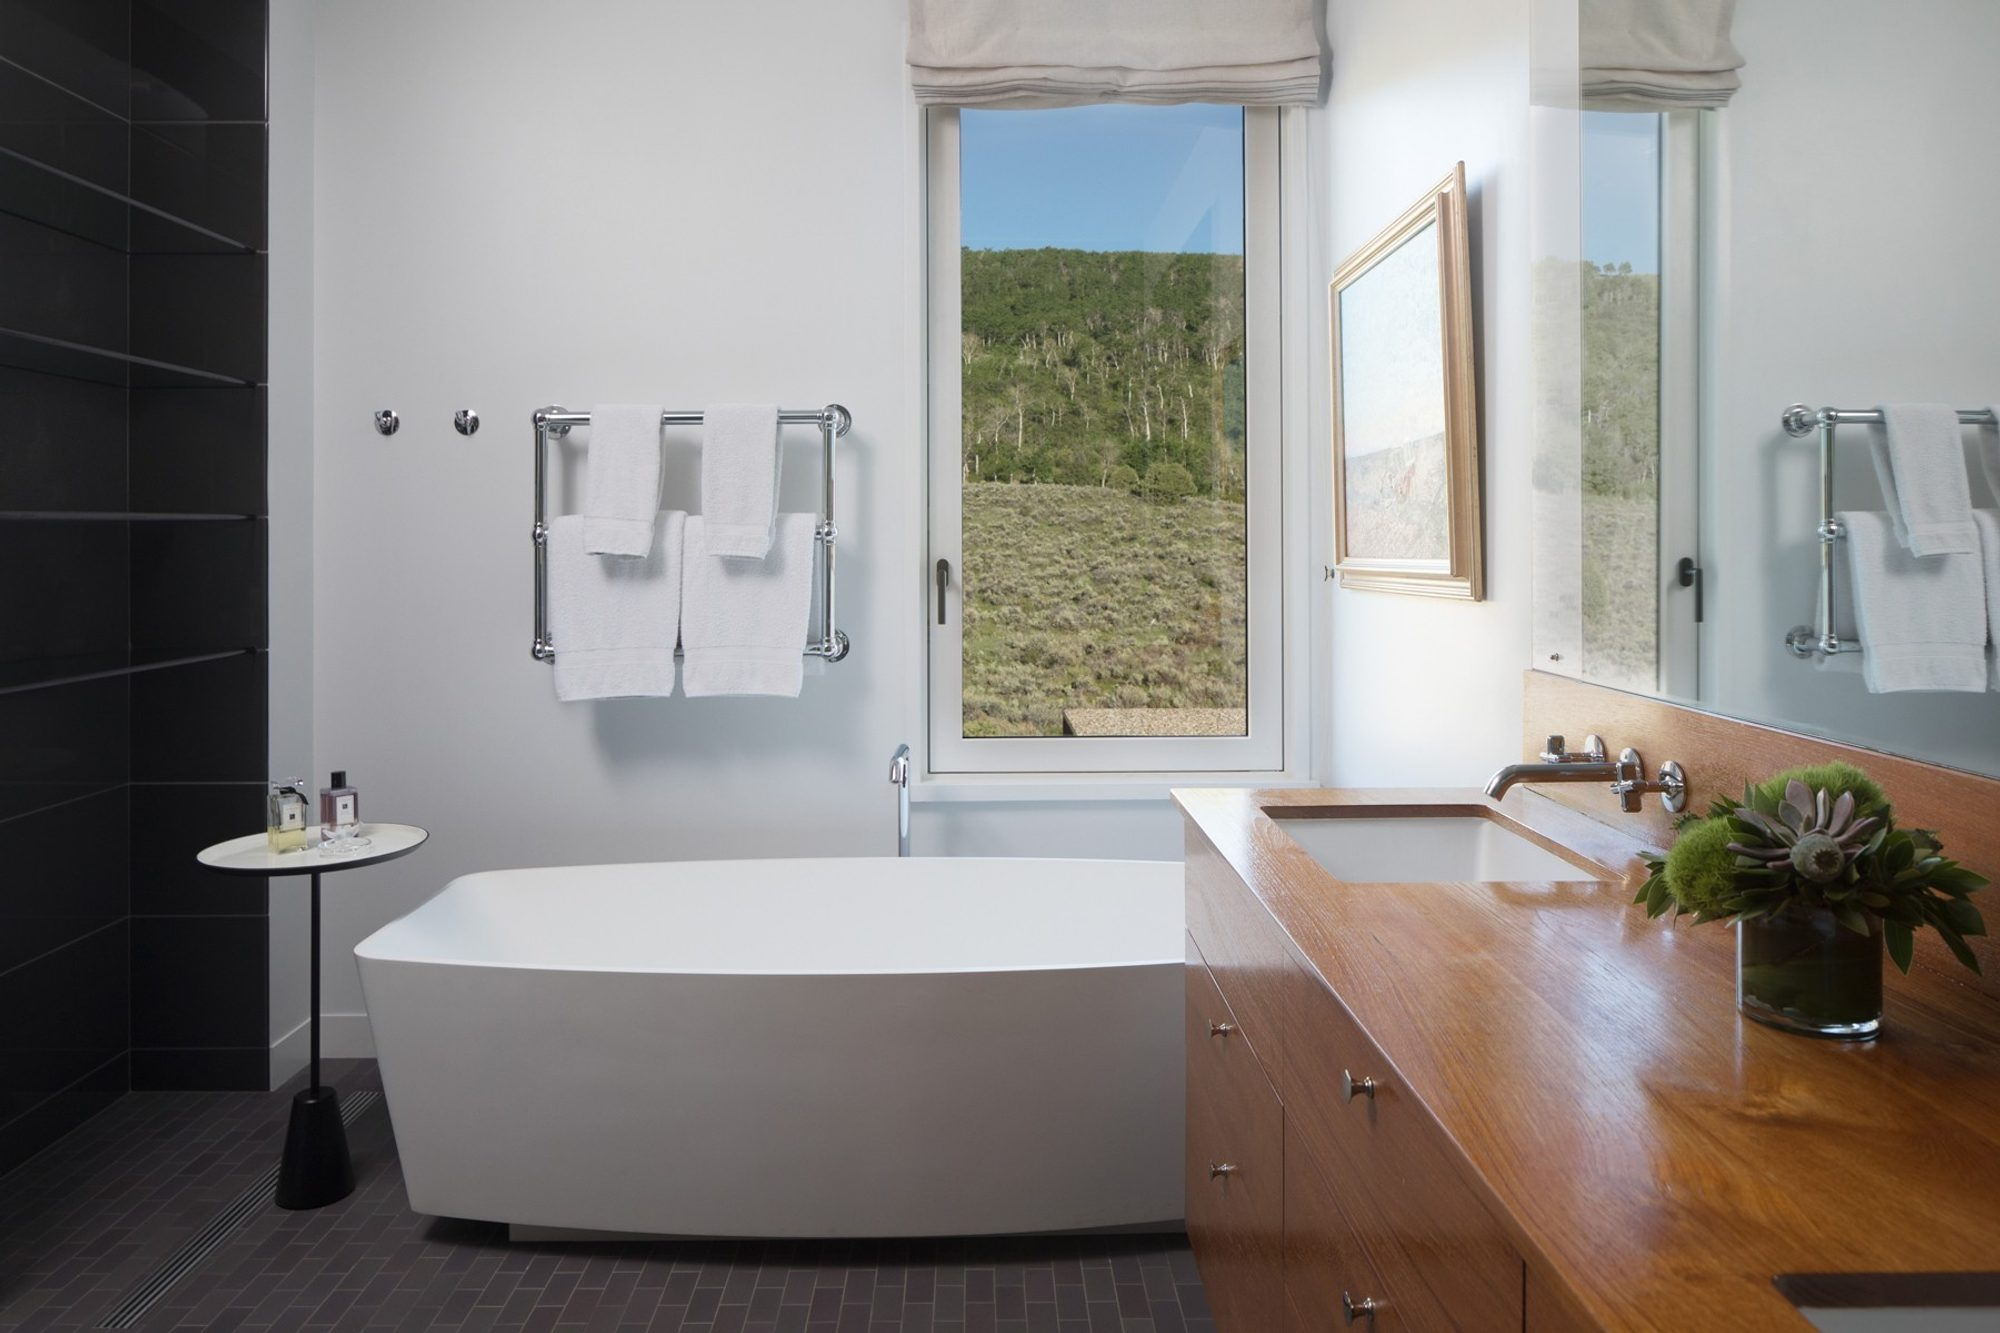 Modern bathroom design with an all wood vanity including a wood countertop and backsplash. Contemporary soaking tub and granite gray tiles.